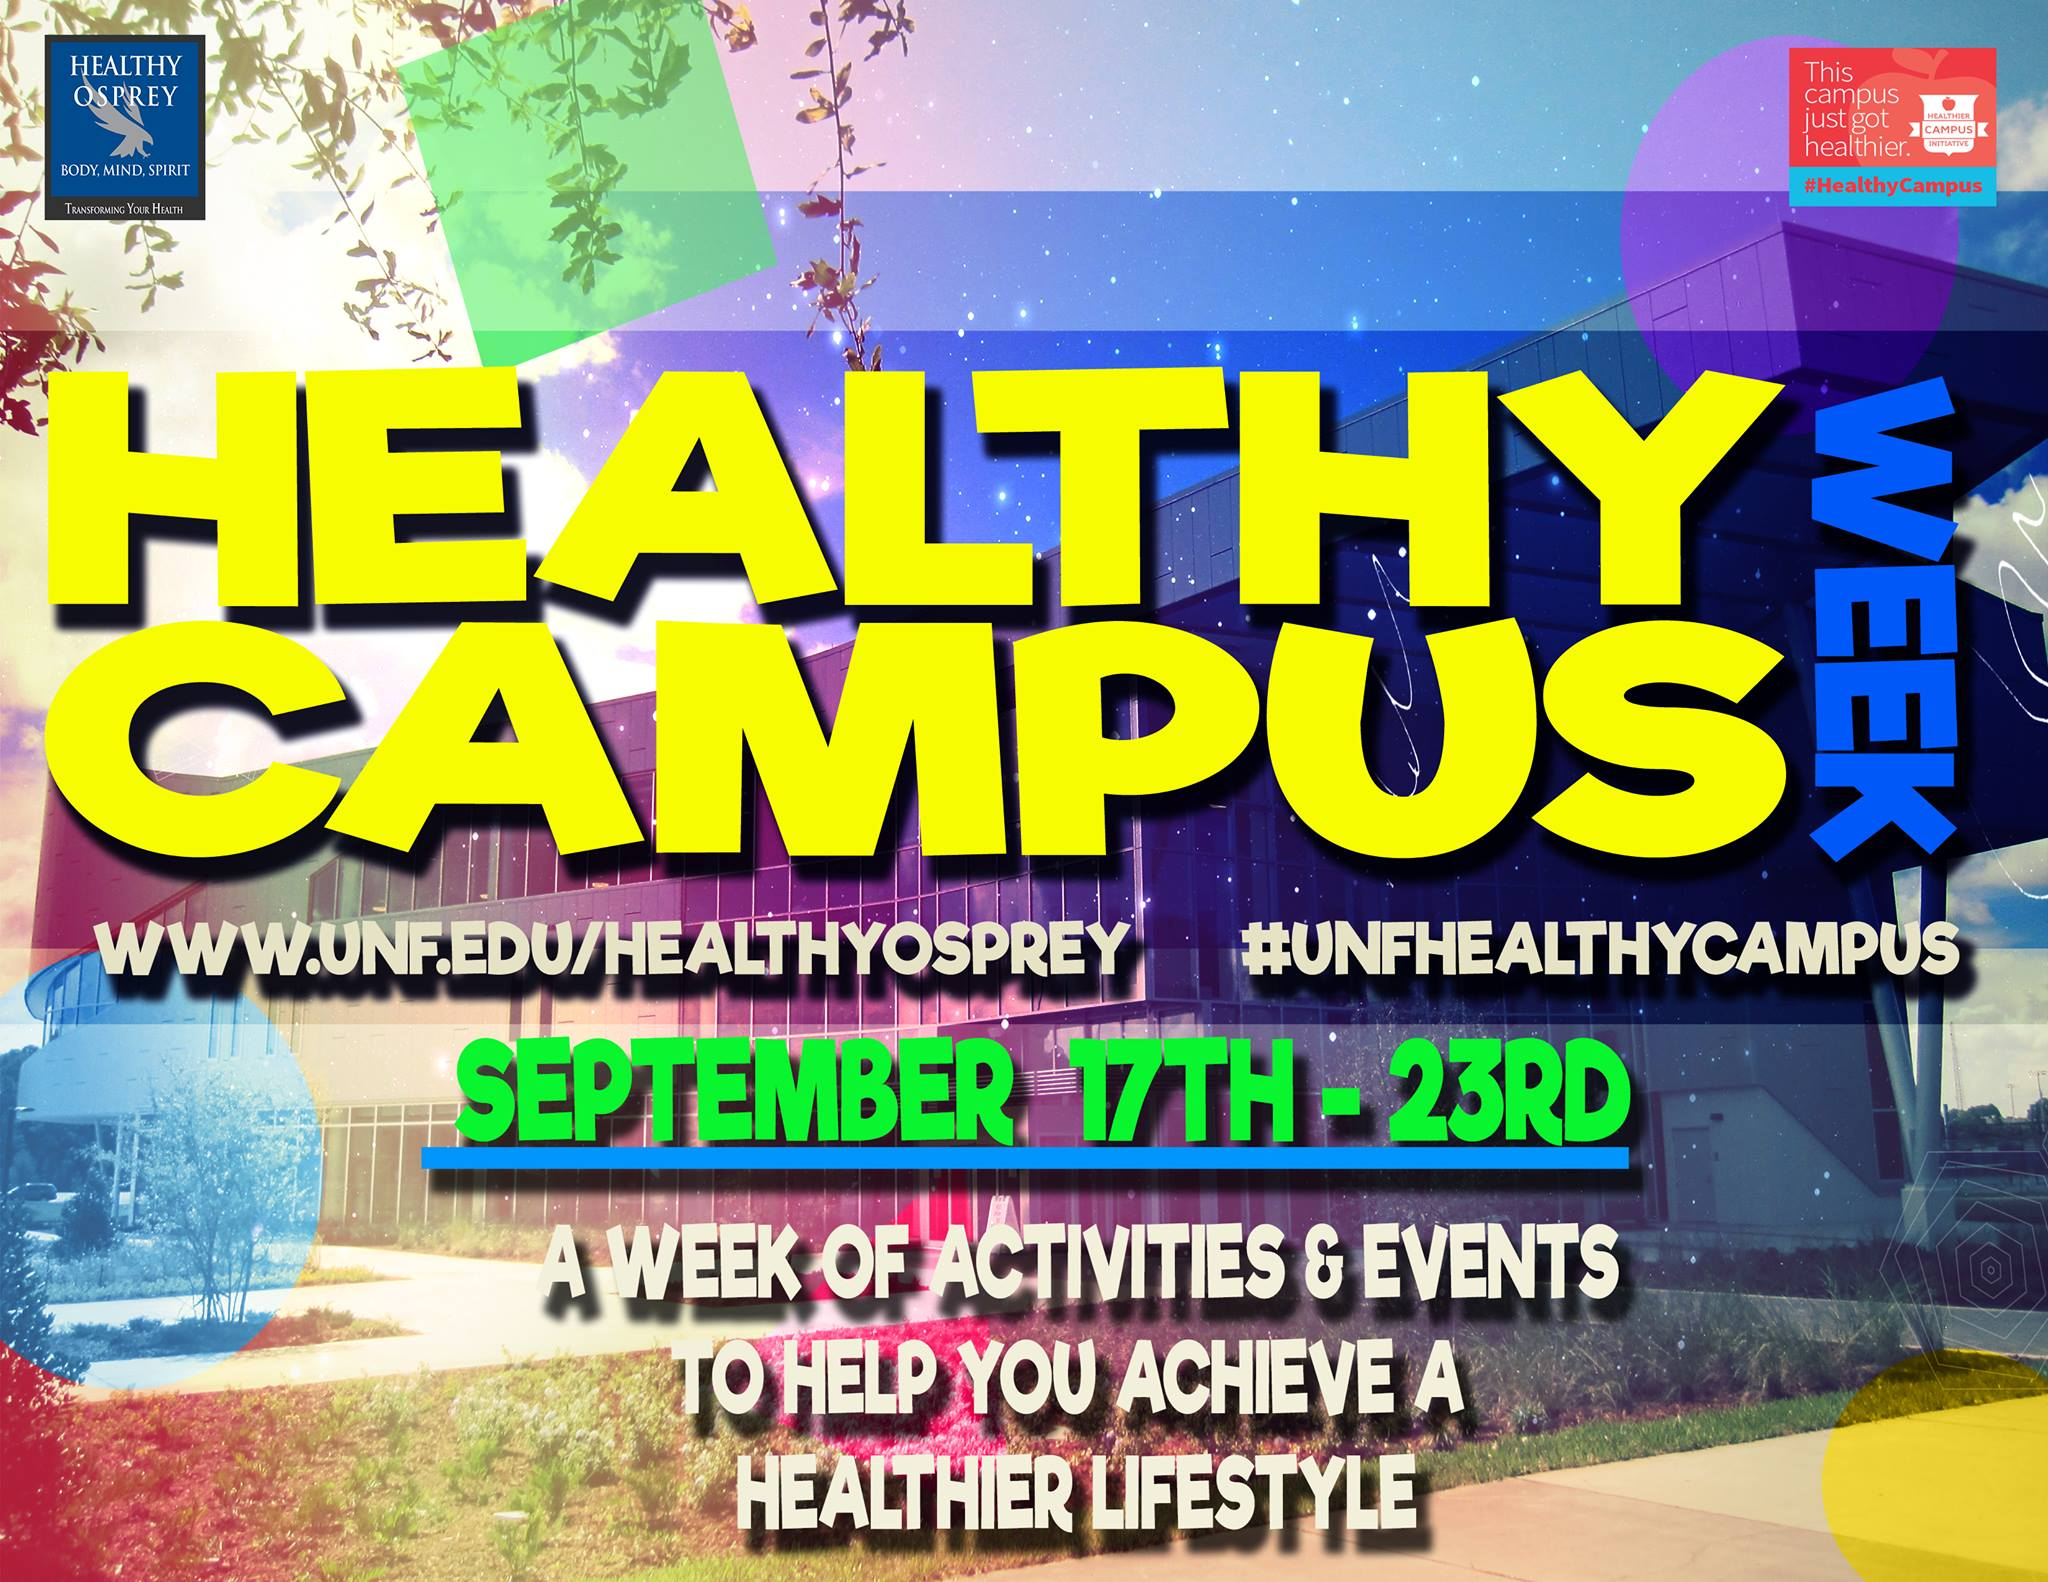 Healthy Campus week hopes to get Ospreys more focused on their overall health and wellness. <i>Photo courtesy of UNF Healthy Osprey</i>